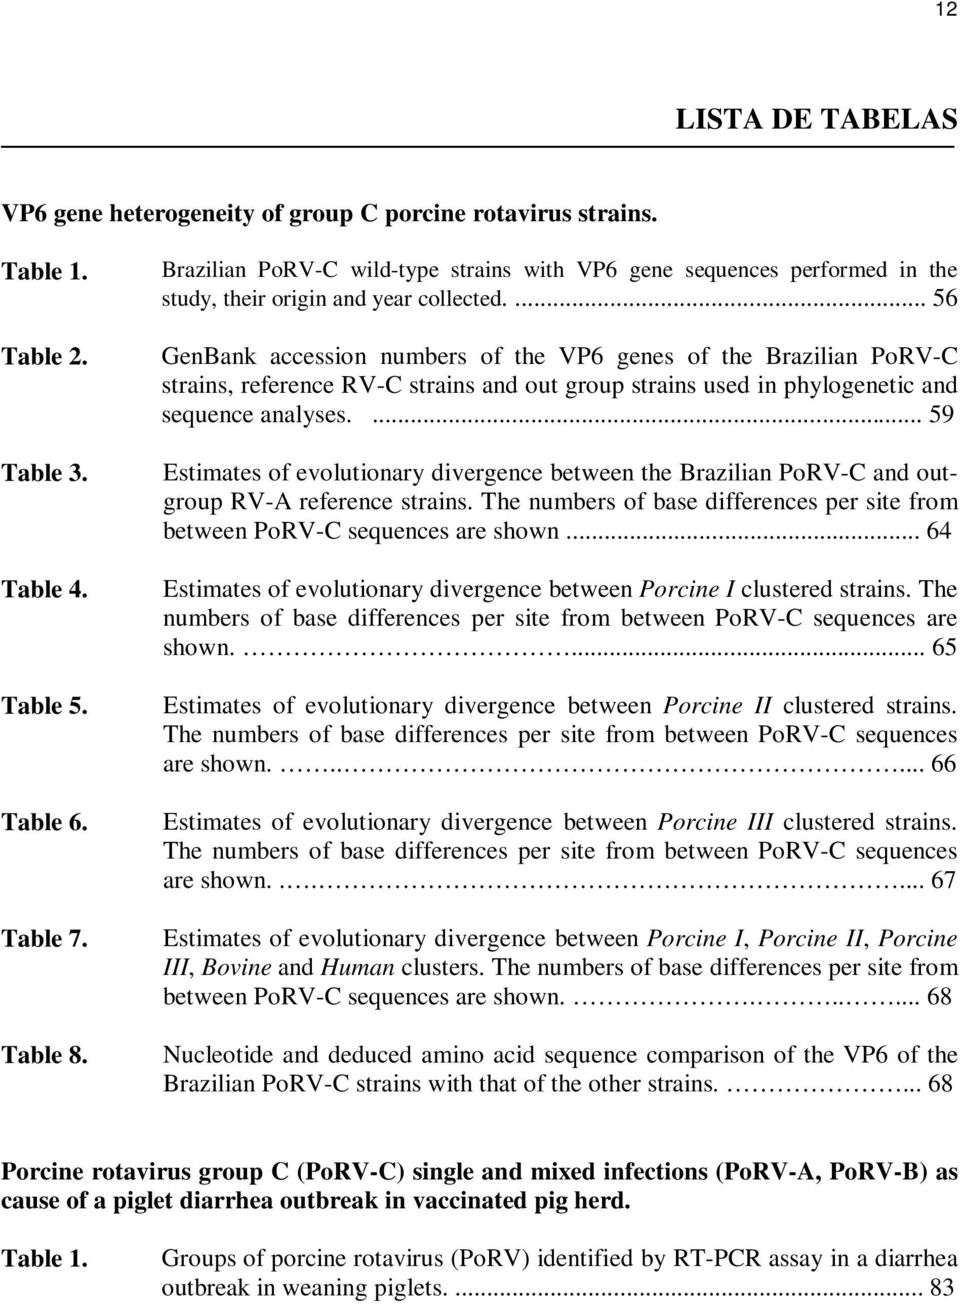 ... 56 GenBank accession numbers of the VP6 genes of the Brazilian PoRV-C strains, reference RV-C strains and out group strains used in phylogenetic and sequence analyses.